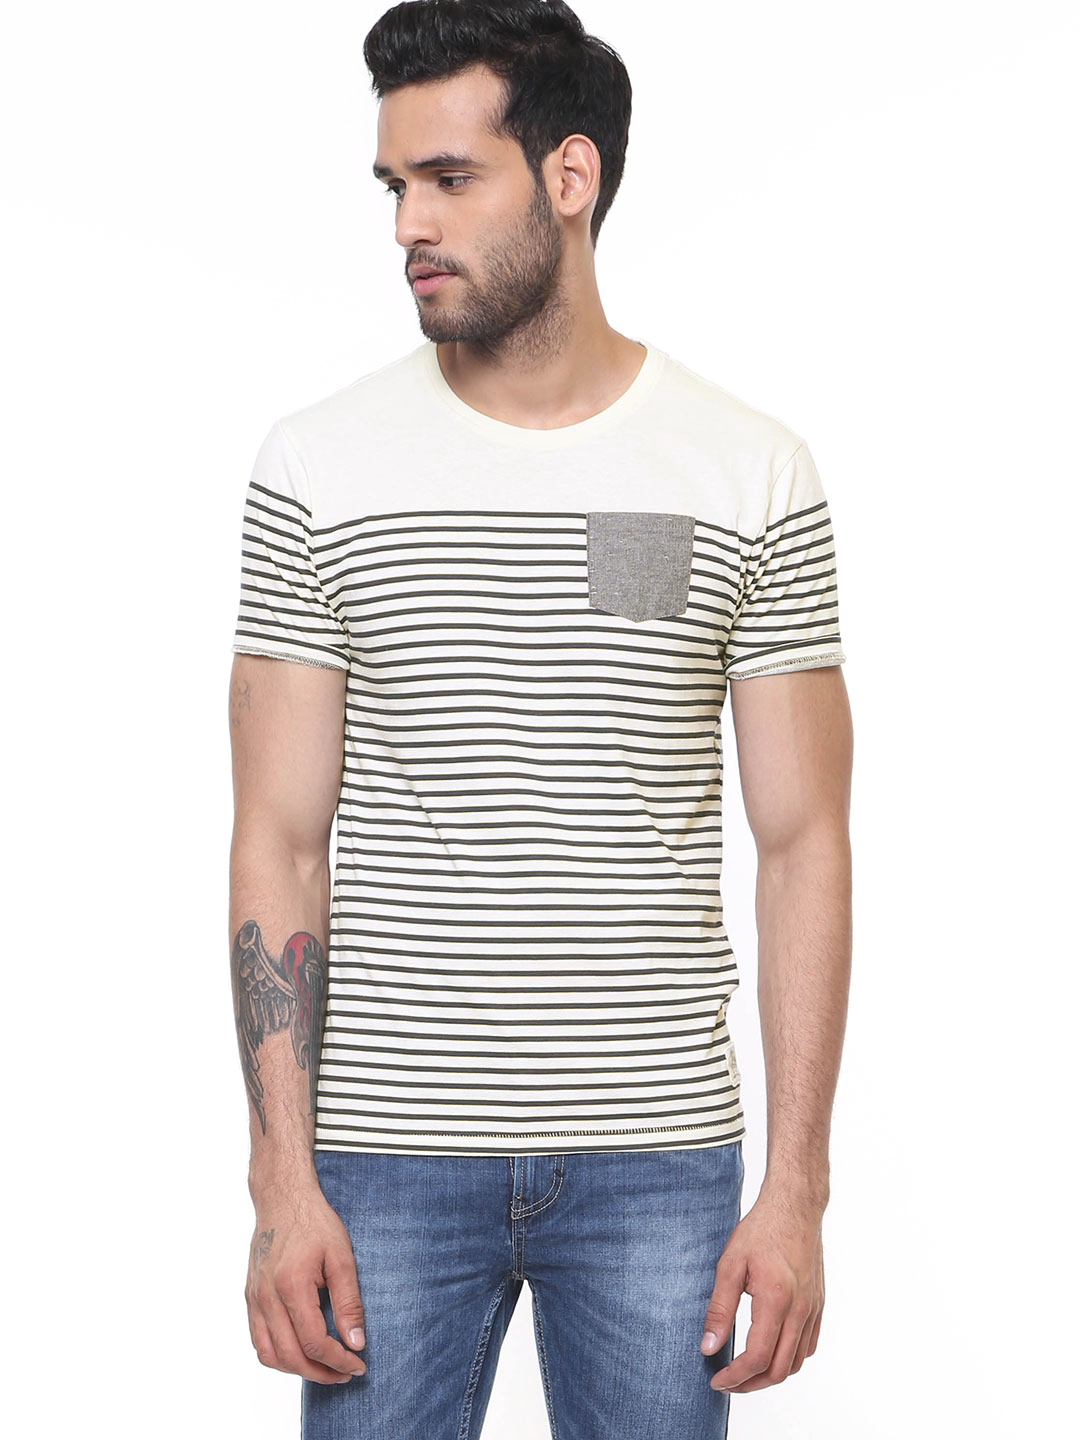 Flying Machine ANTIQUE WHITE Striped T-Shirt With Patch Pocket 1